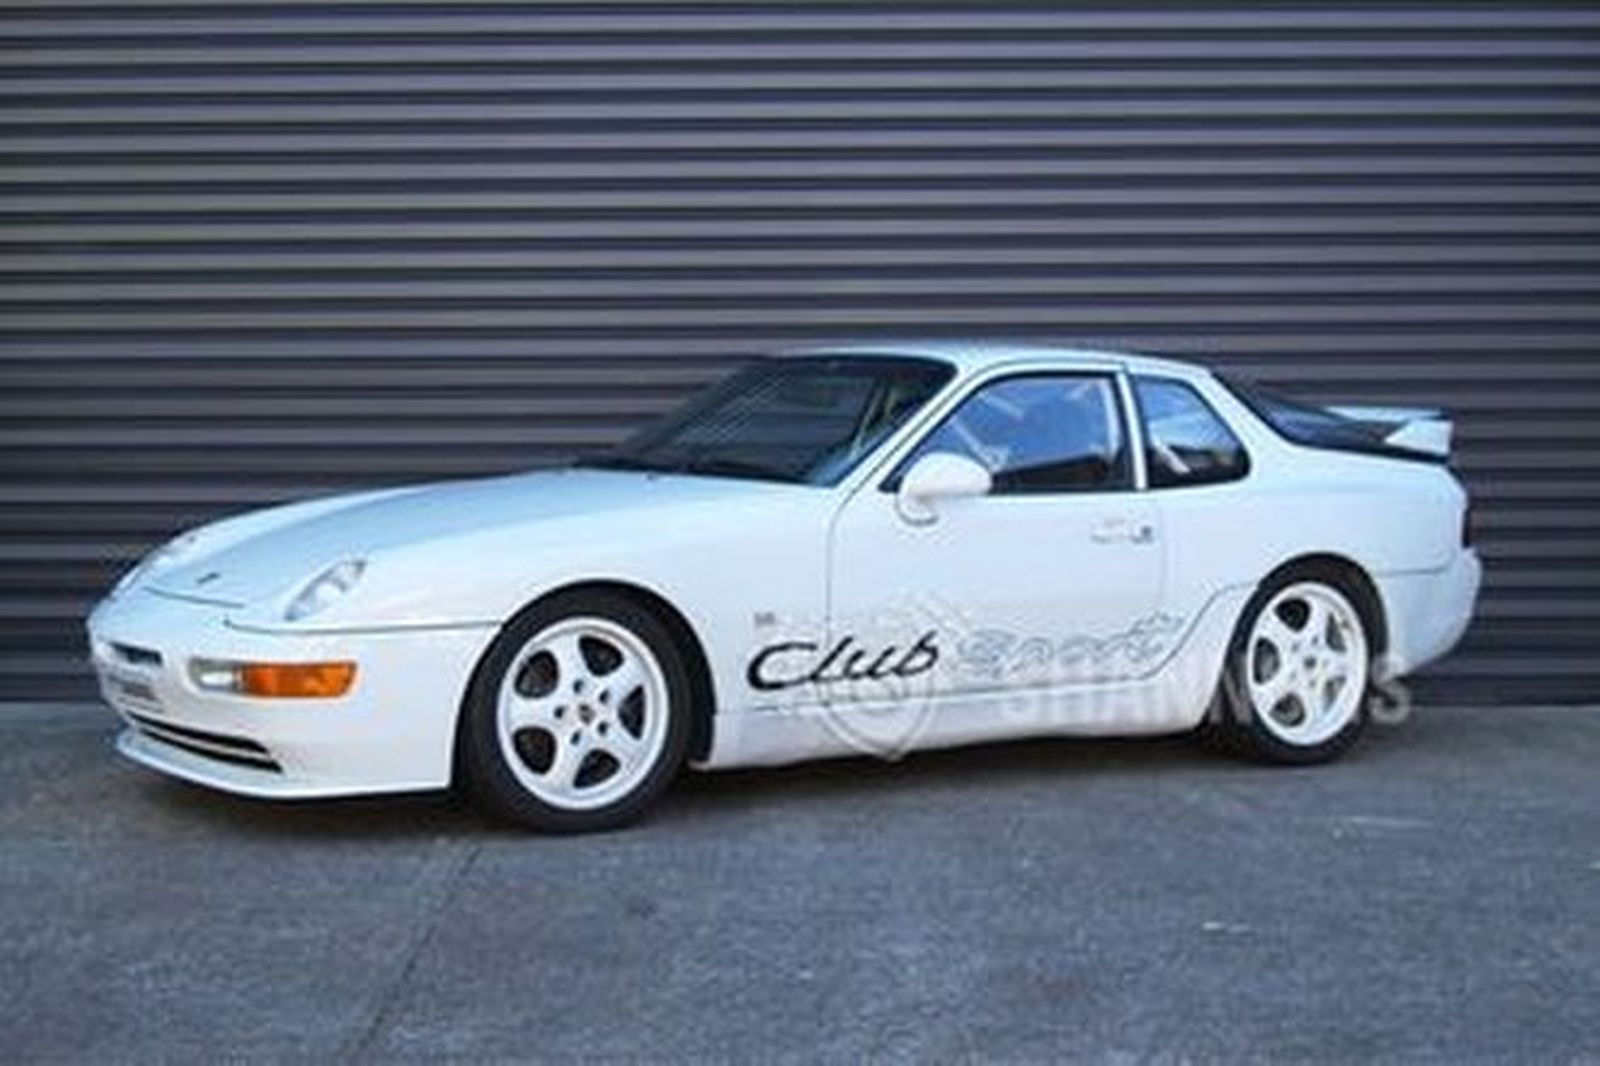 Porsche 968 Club Sport Coupe